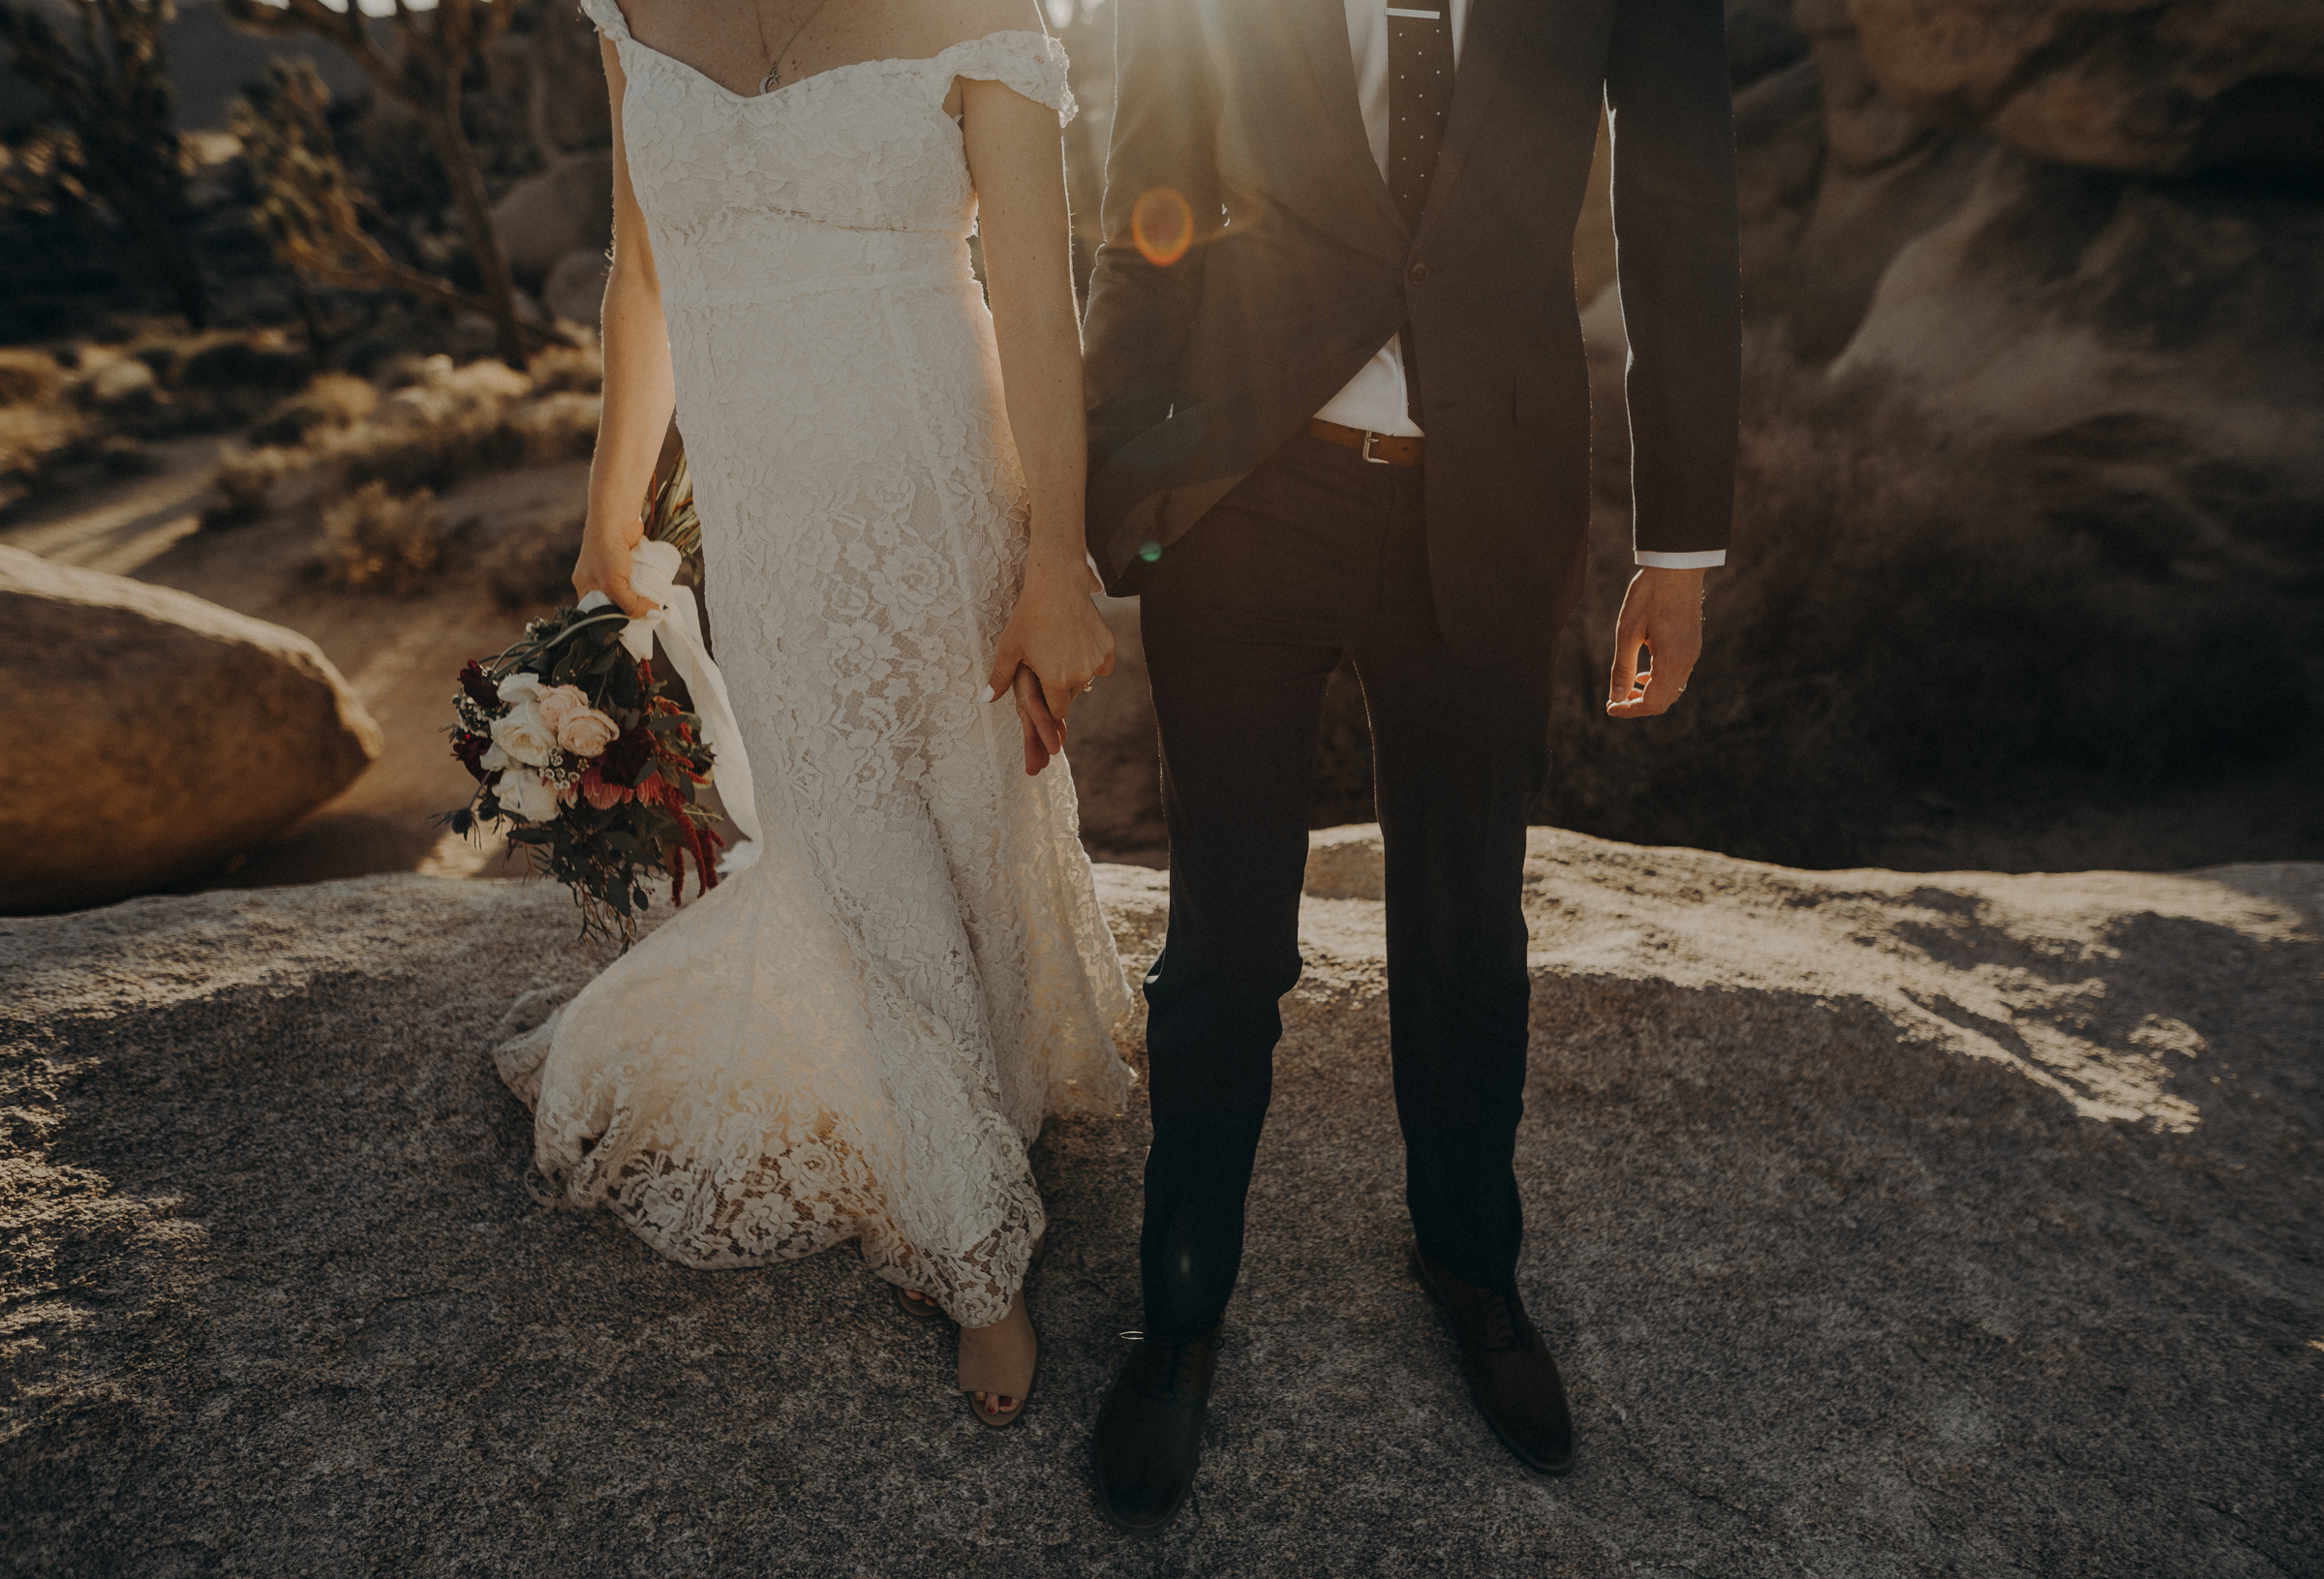 Joshua Tree Elopement - Los Angeles Wedding Photographers - IsaiahAndTaylor.com-072.jpg